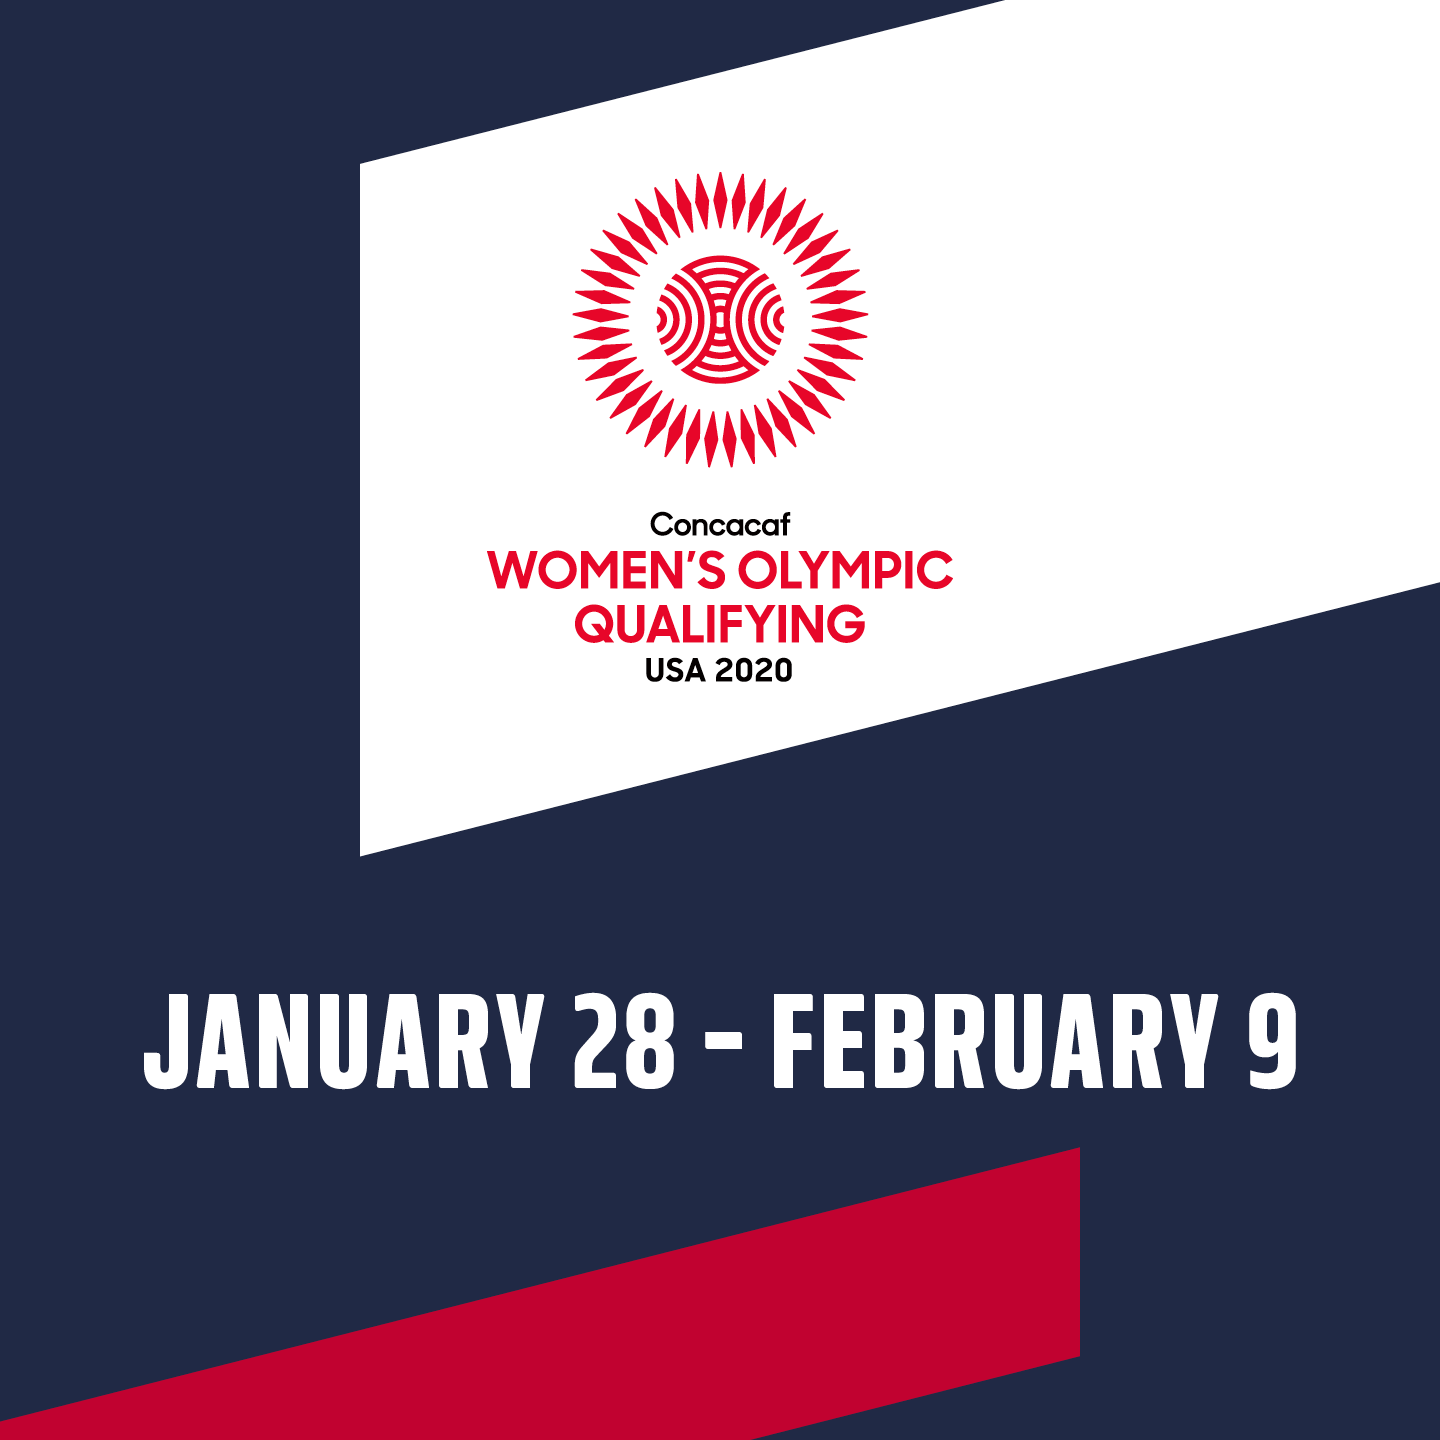 Concacaf Womens World Cup Qualifying 2020.Tickets Go On Sale Nov 22 For 2020 Concacaf Women S Olympic